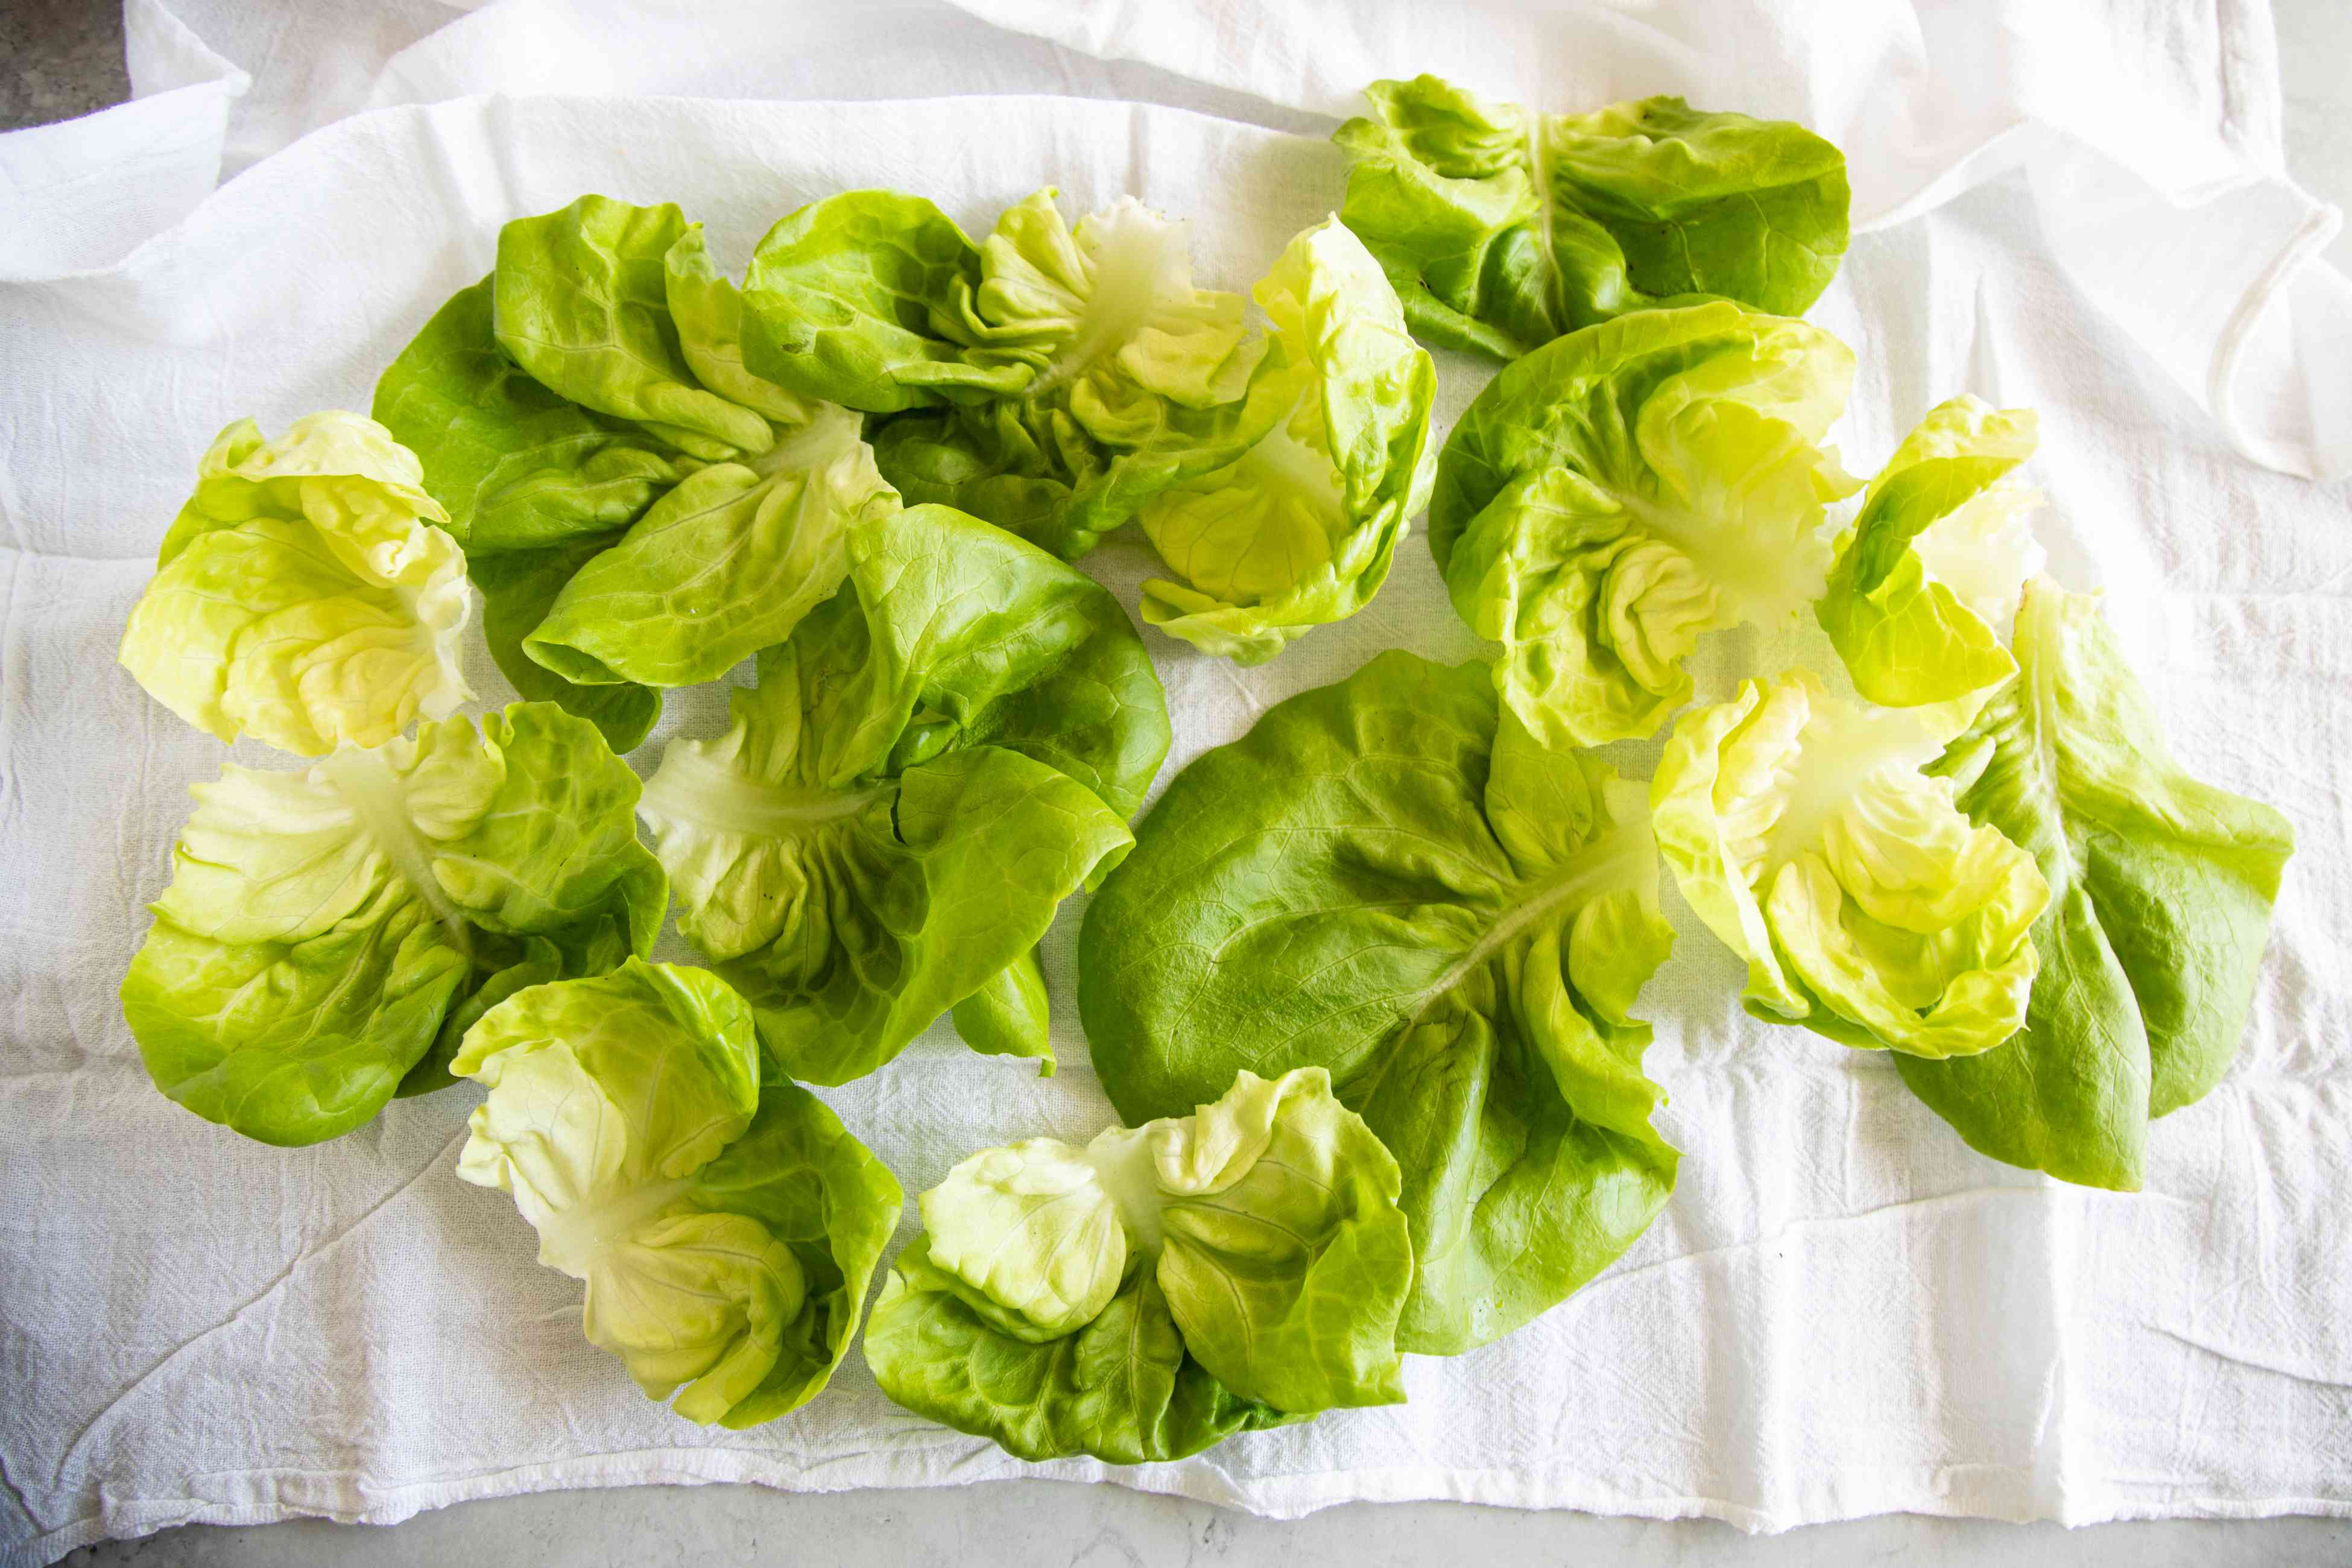 Lettuce leaves laid out on a white flour sack towel